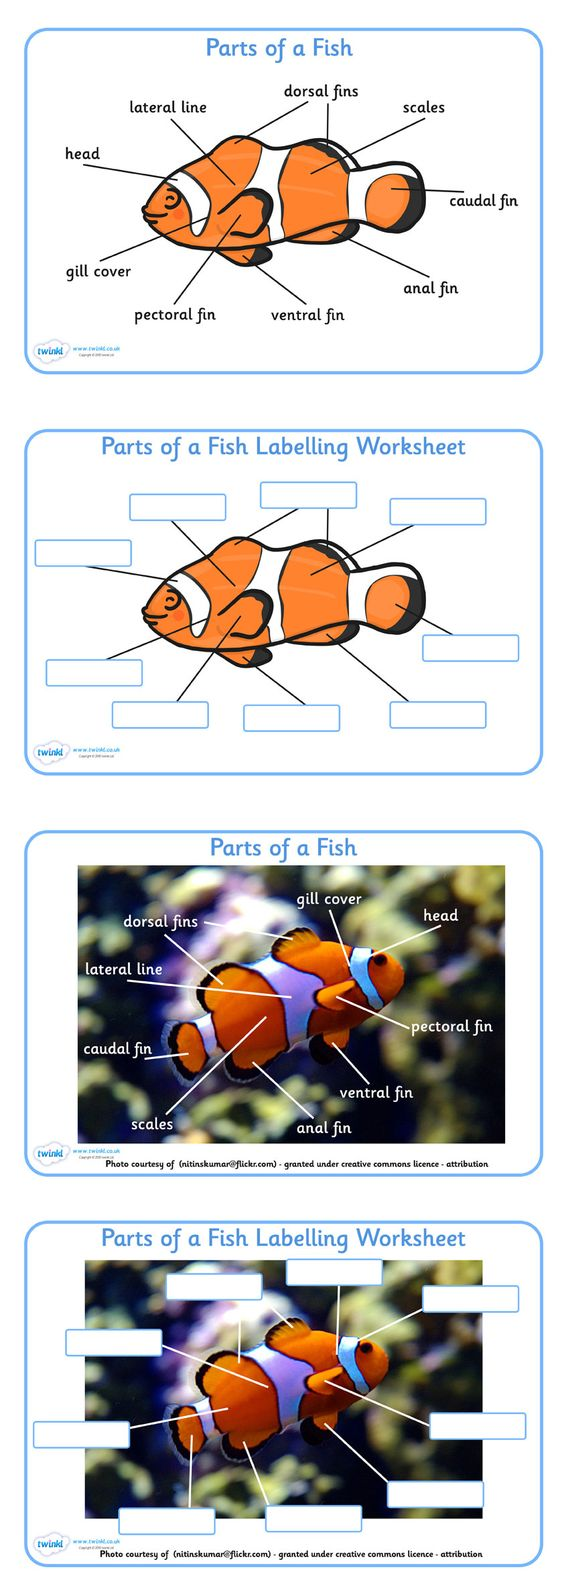 Parts of a Fish Labelling Sheets - Pop over to our site at www.twinkl.co.uk and check out our lovely Under the Sea primary teaching resources! under the sea,  fish labelling sheet, #UnderTheSea #UnderTheSea_Resources